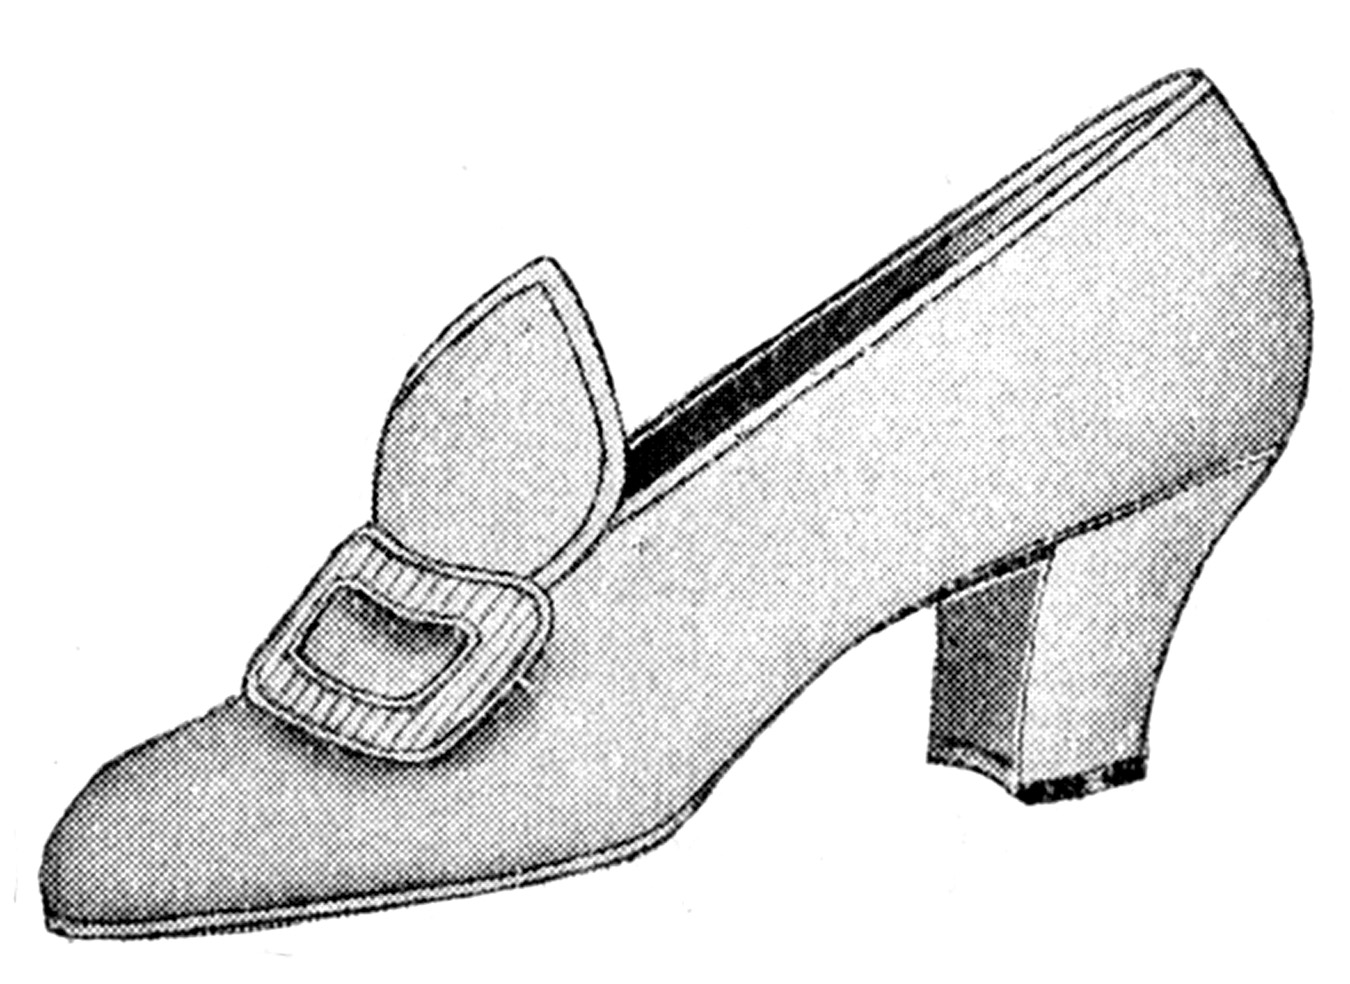 shoes drawing shoe drawing template at getdrawings free download drawing shoes